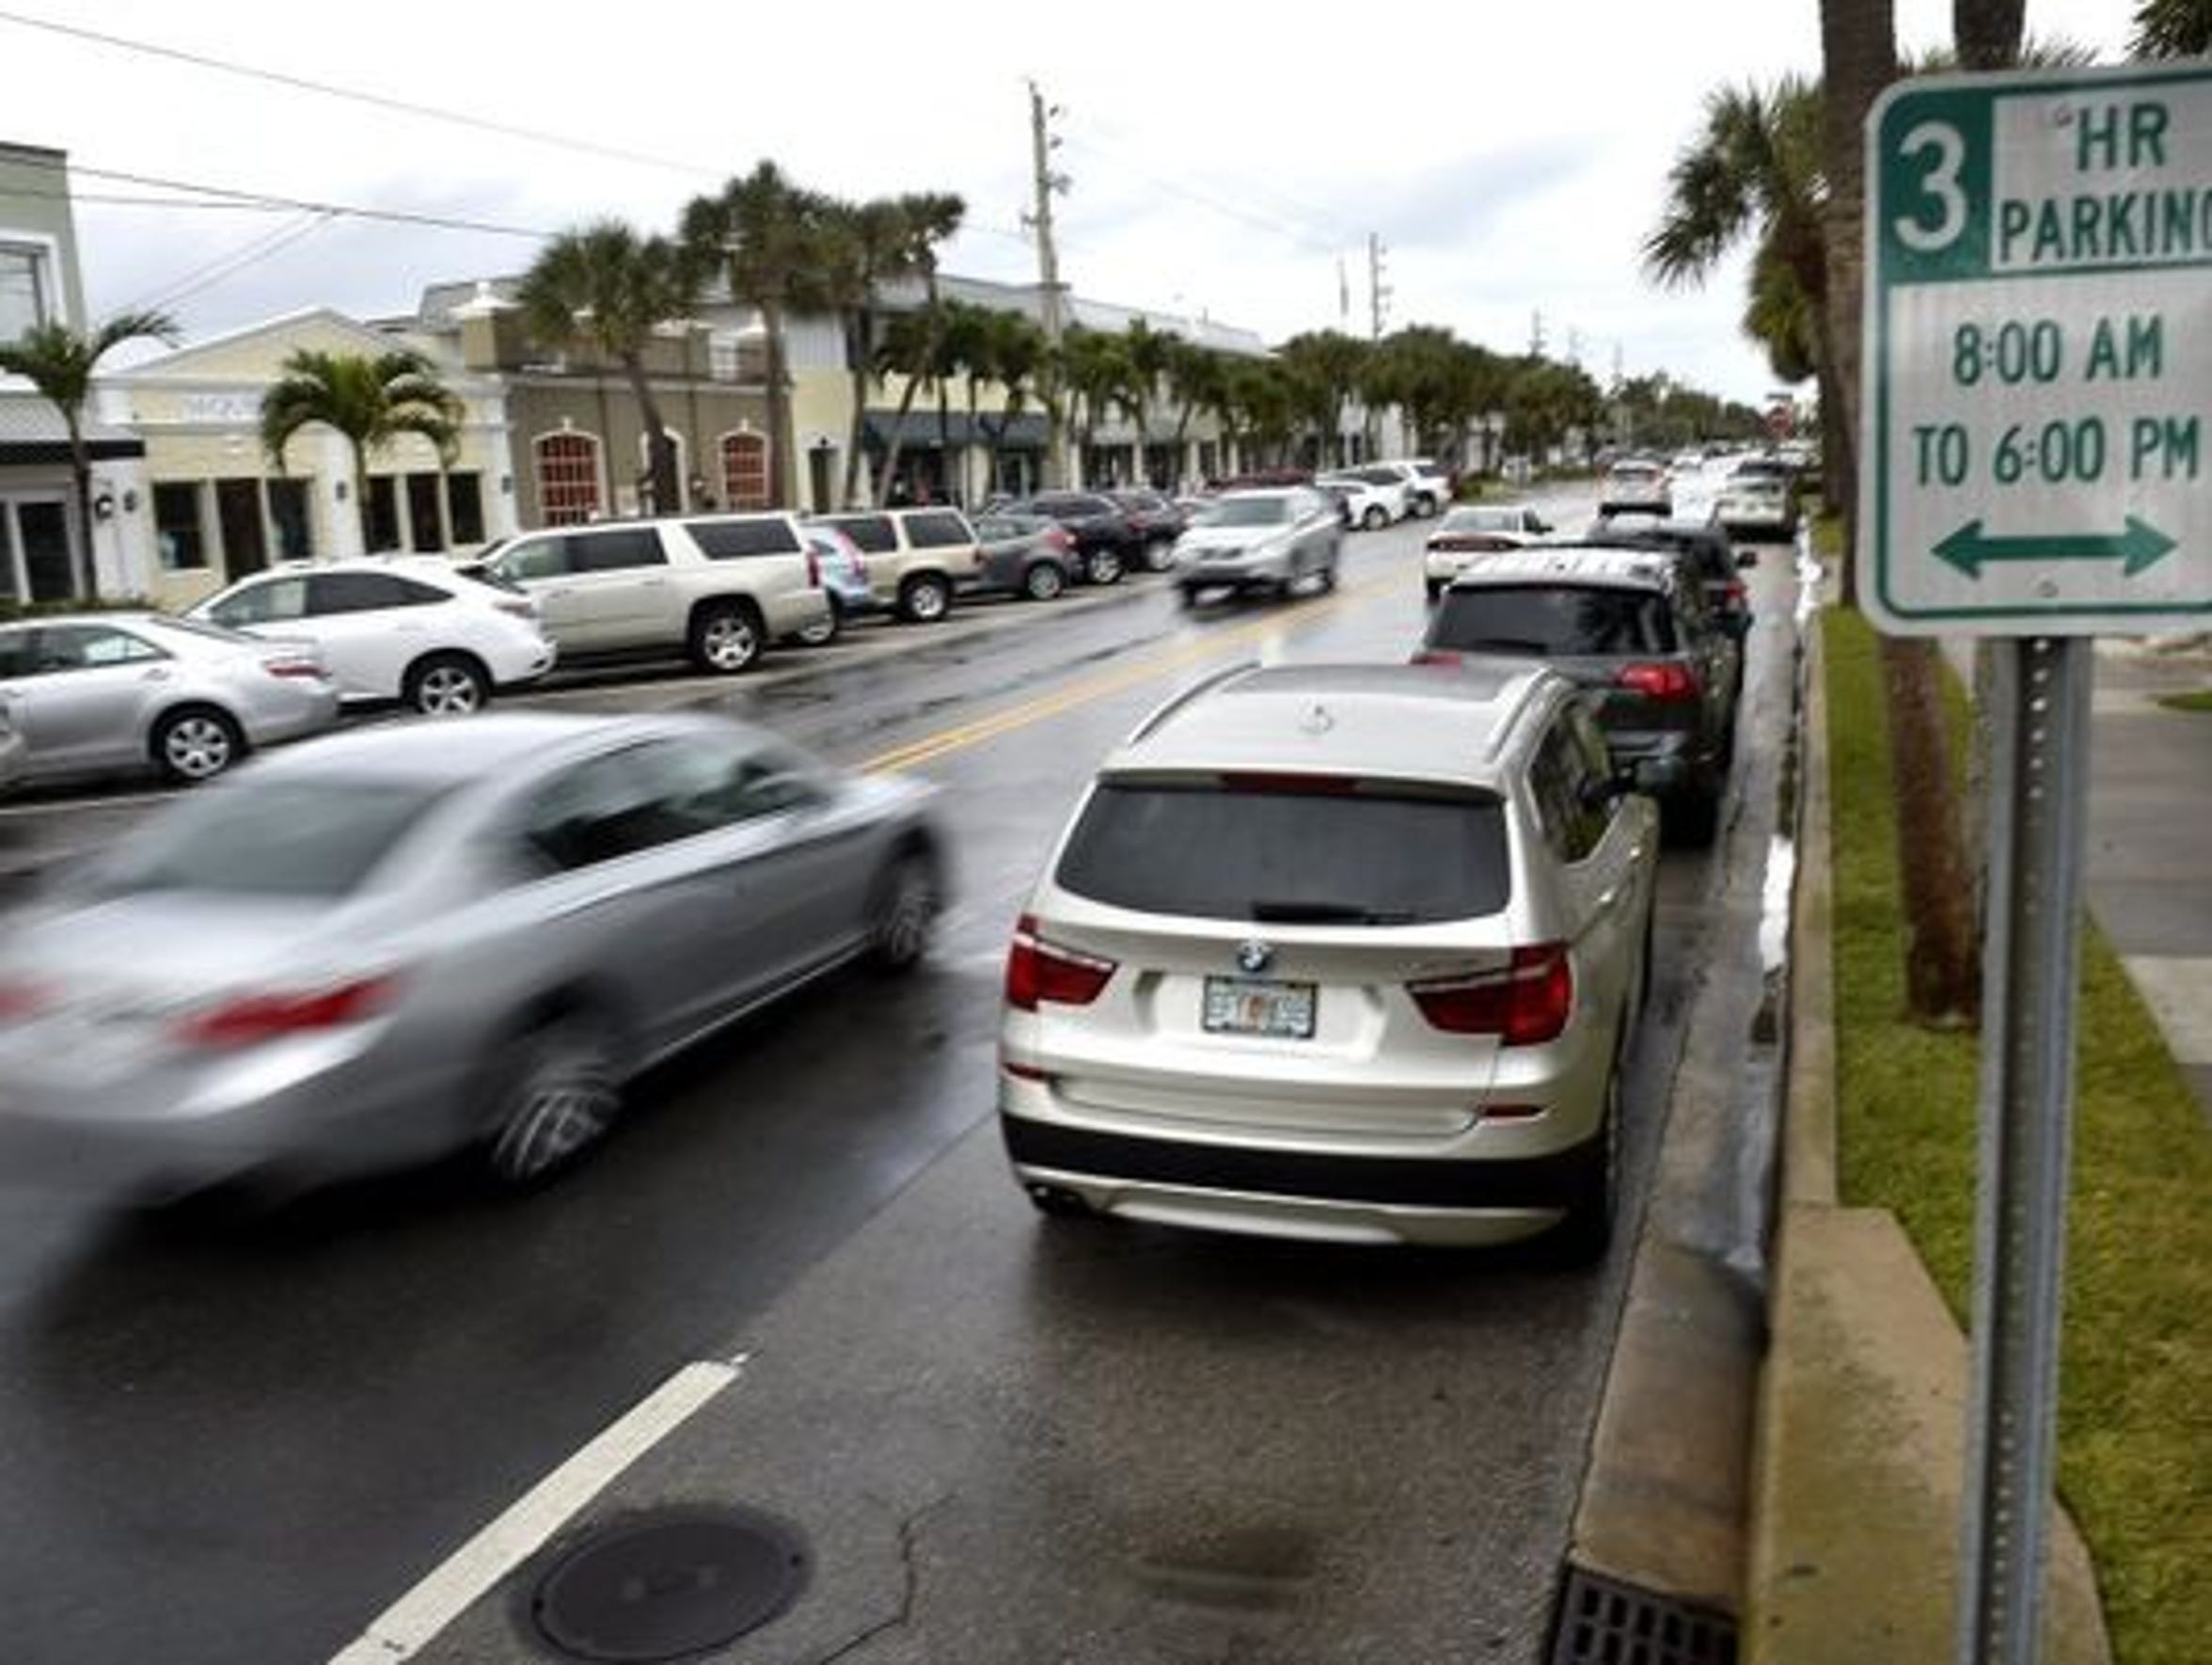 Some businesses want the city to return to three-hour parking in the beachside business area.